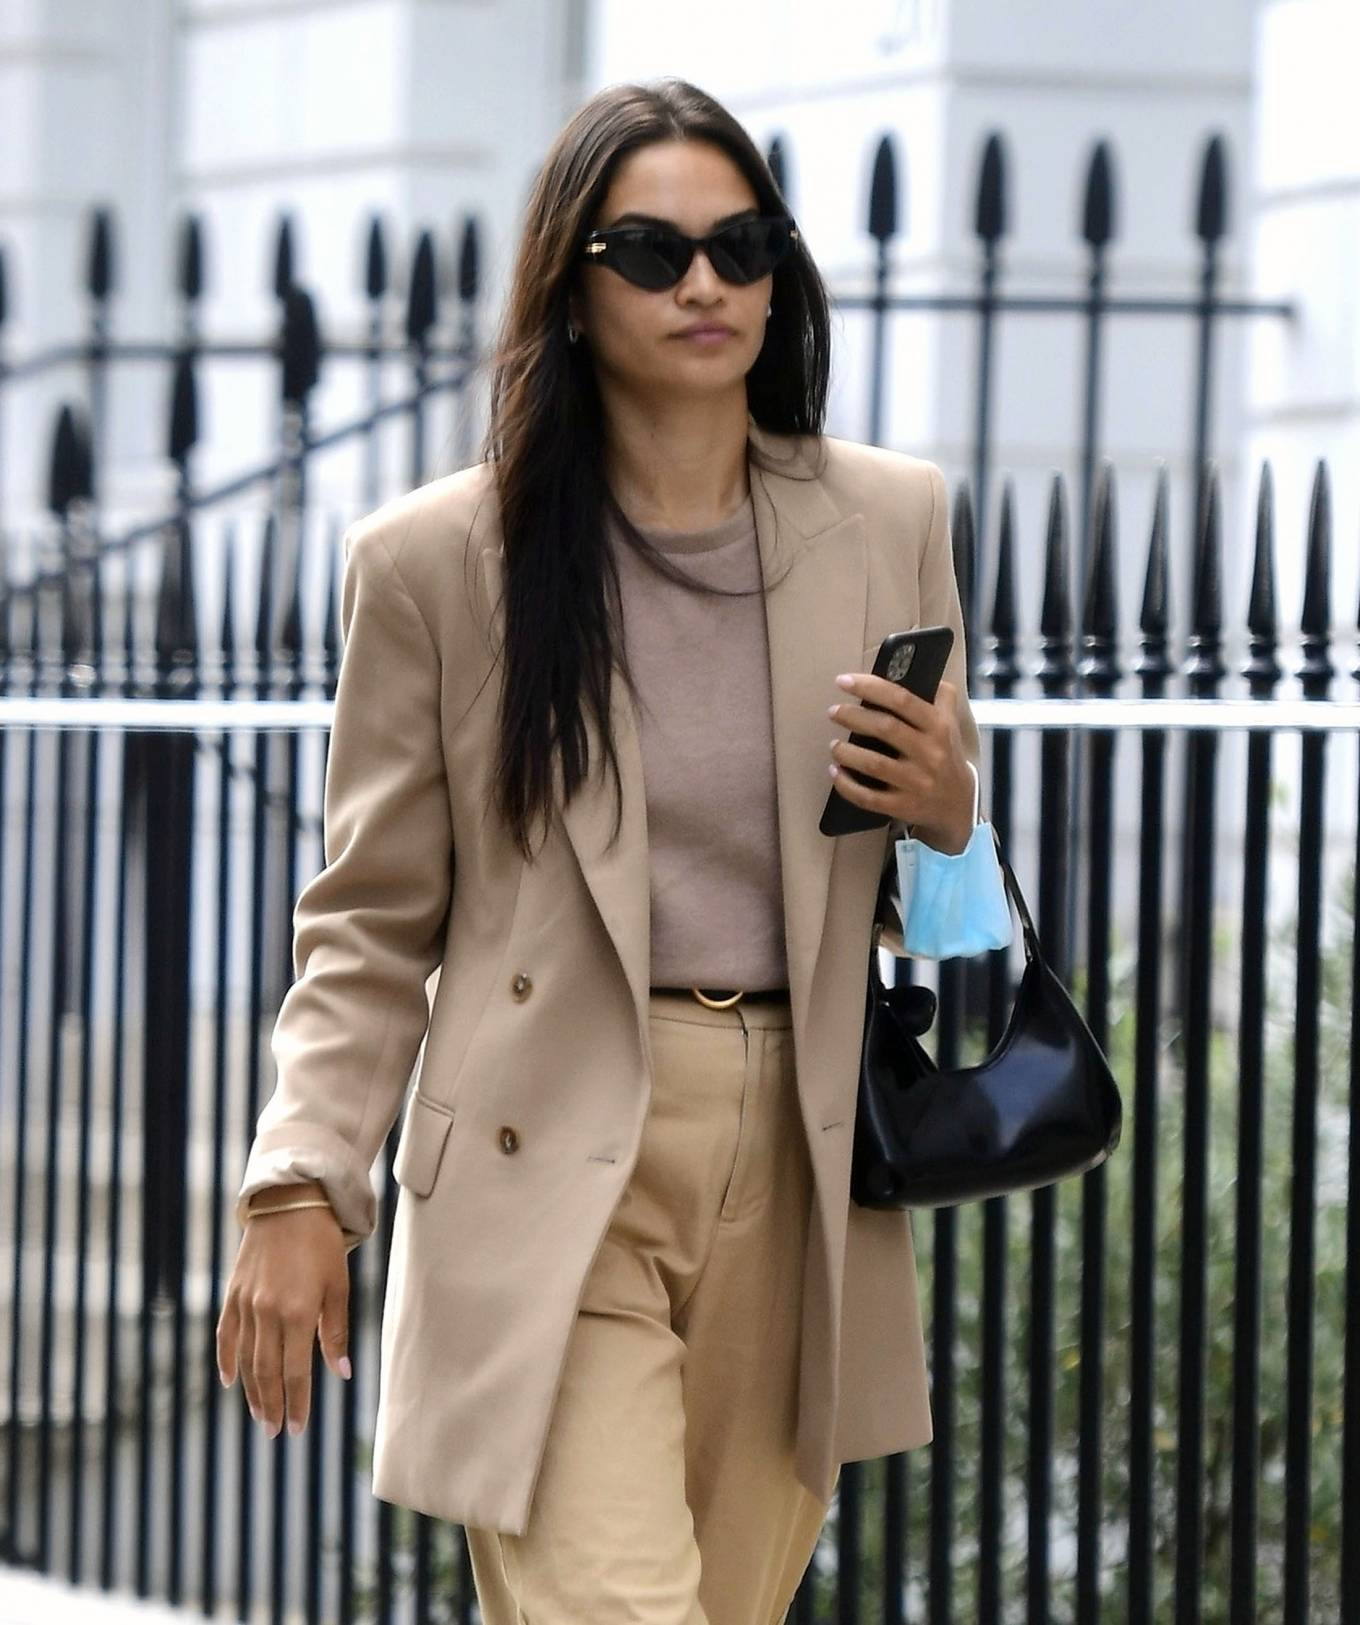 Shanina Shaik 2020 : Shanina Shaik – Stylish in her beige trousers and jacket while out in London-04